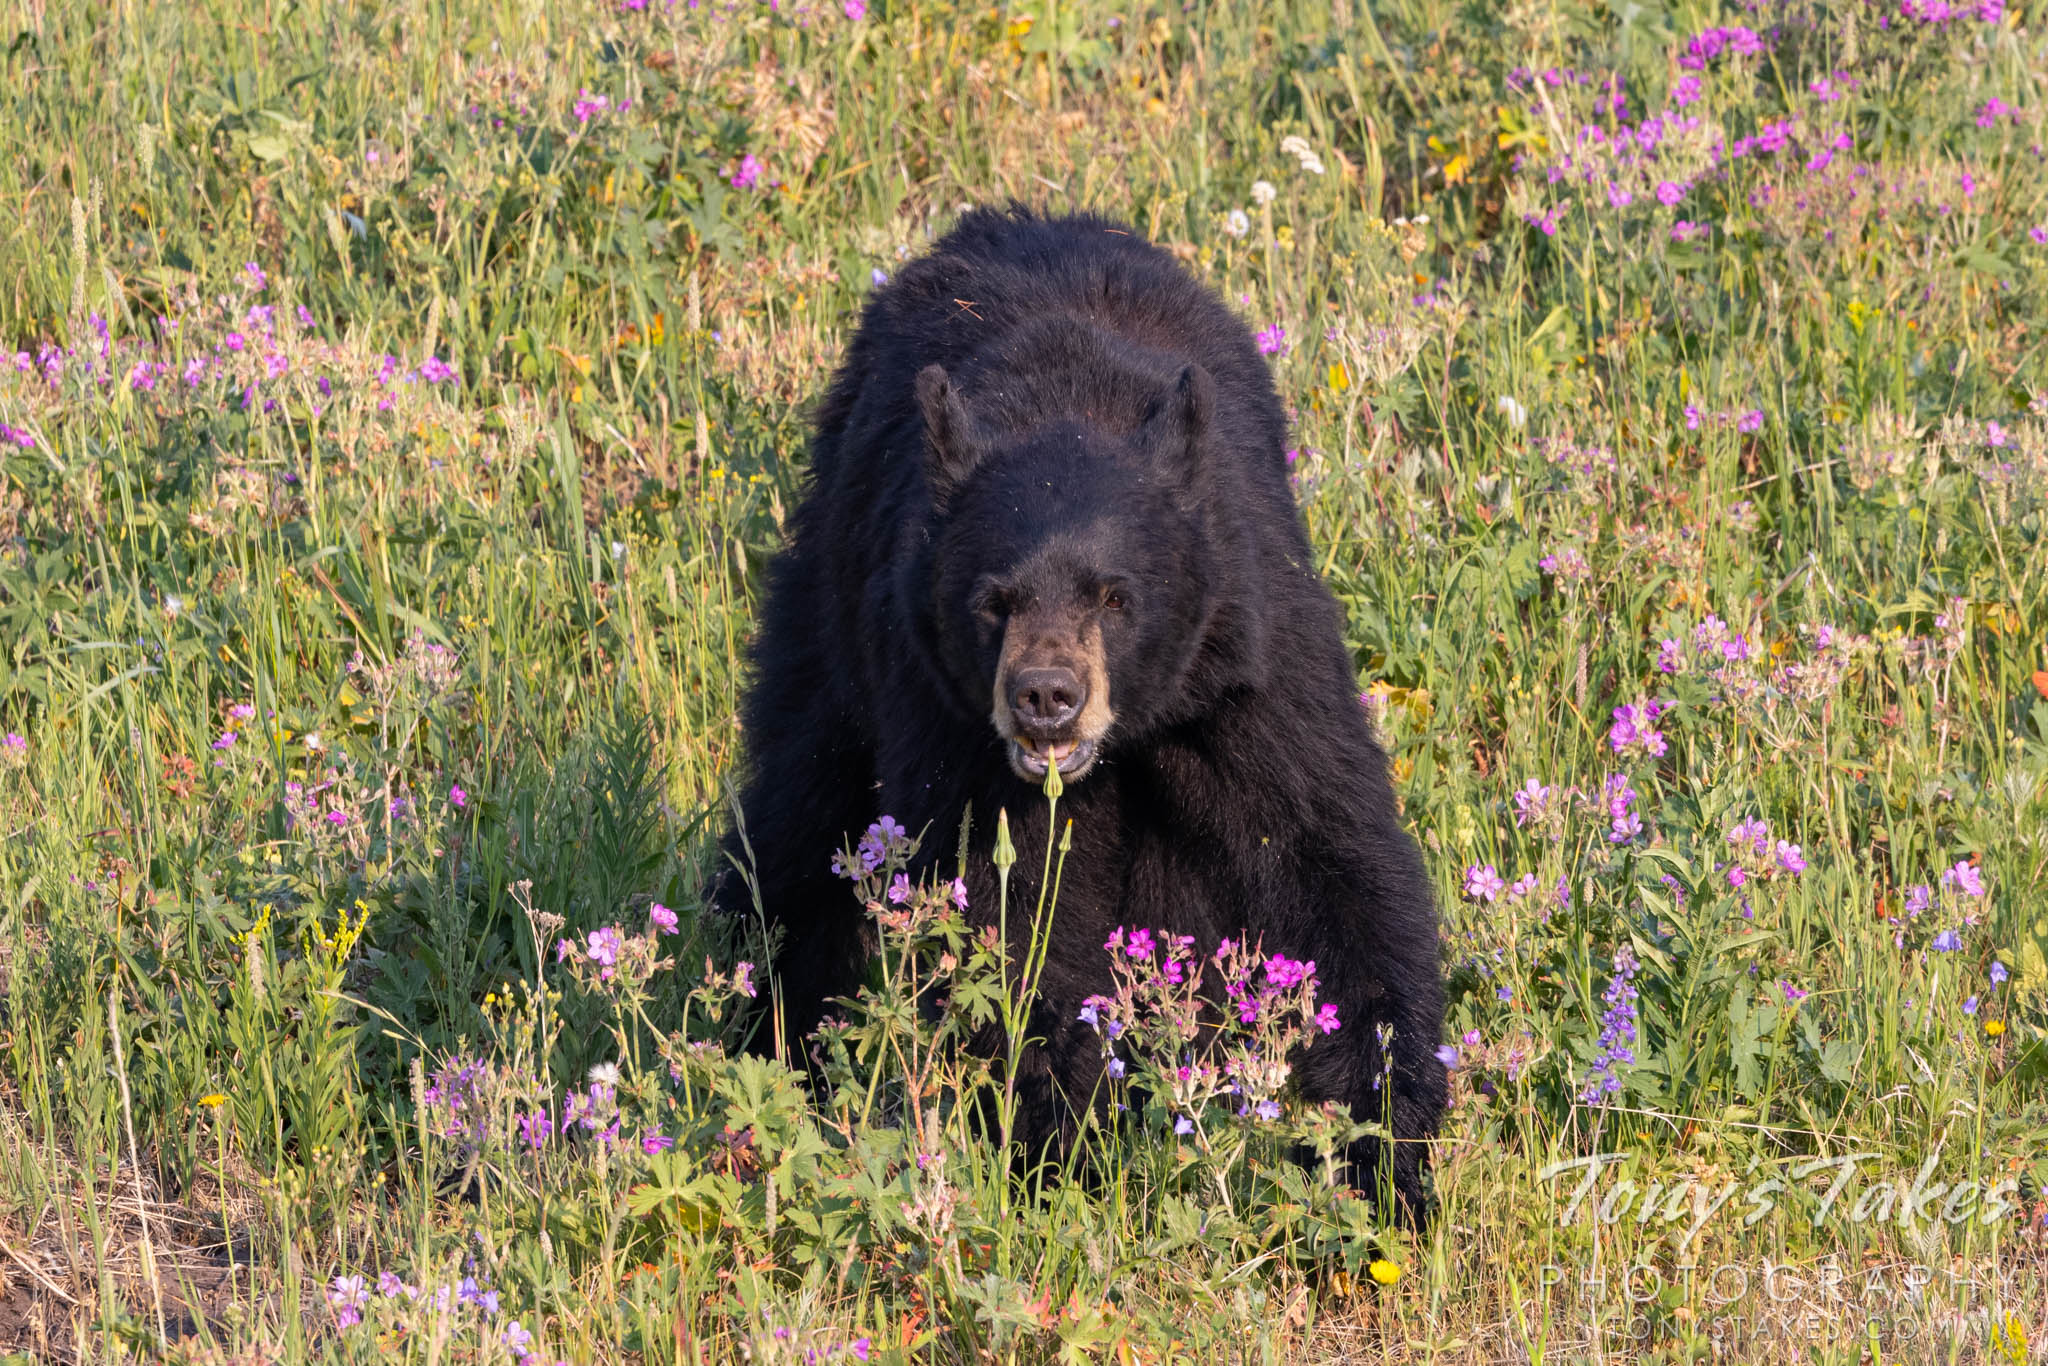 Black bear goes for the buds